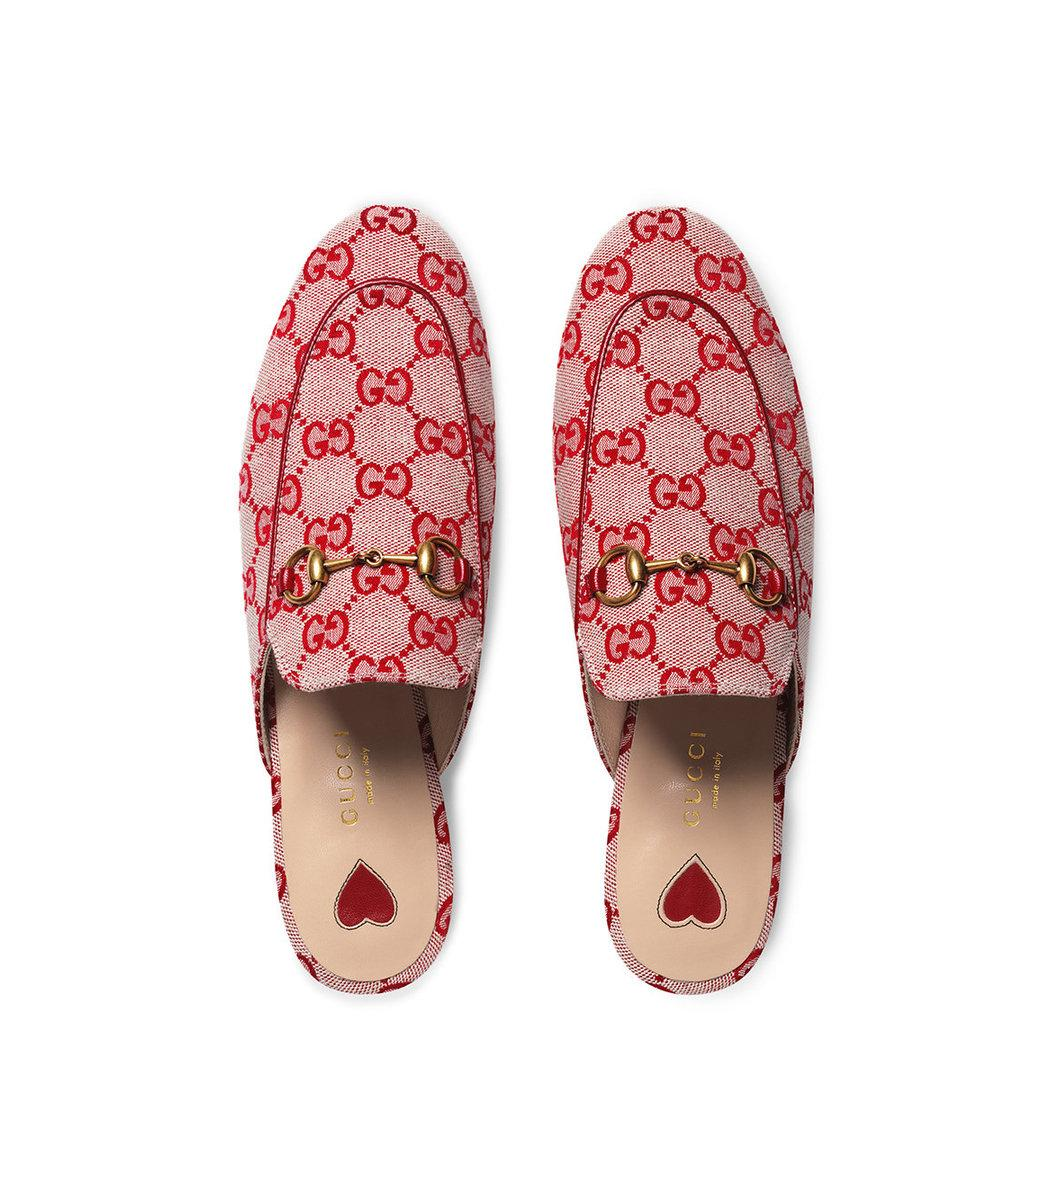 Gucci Princetown Horsebit-Detailed Logo-Woven Canvas Slippers In Neutrals